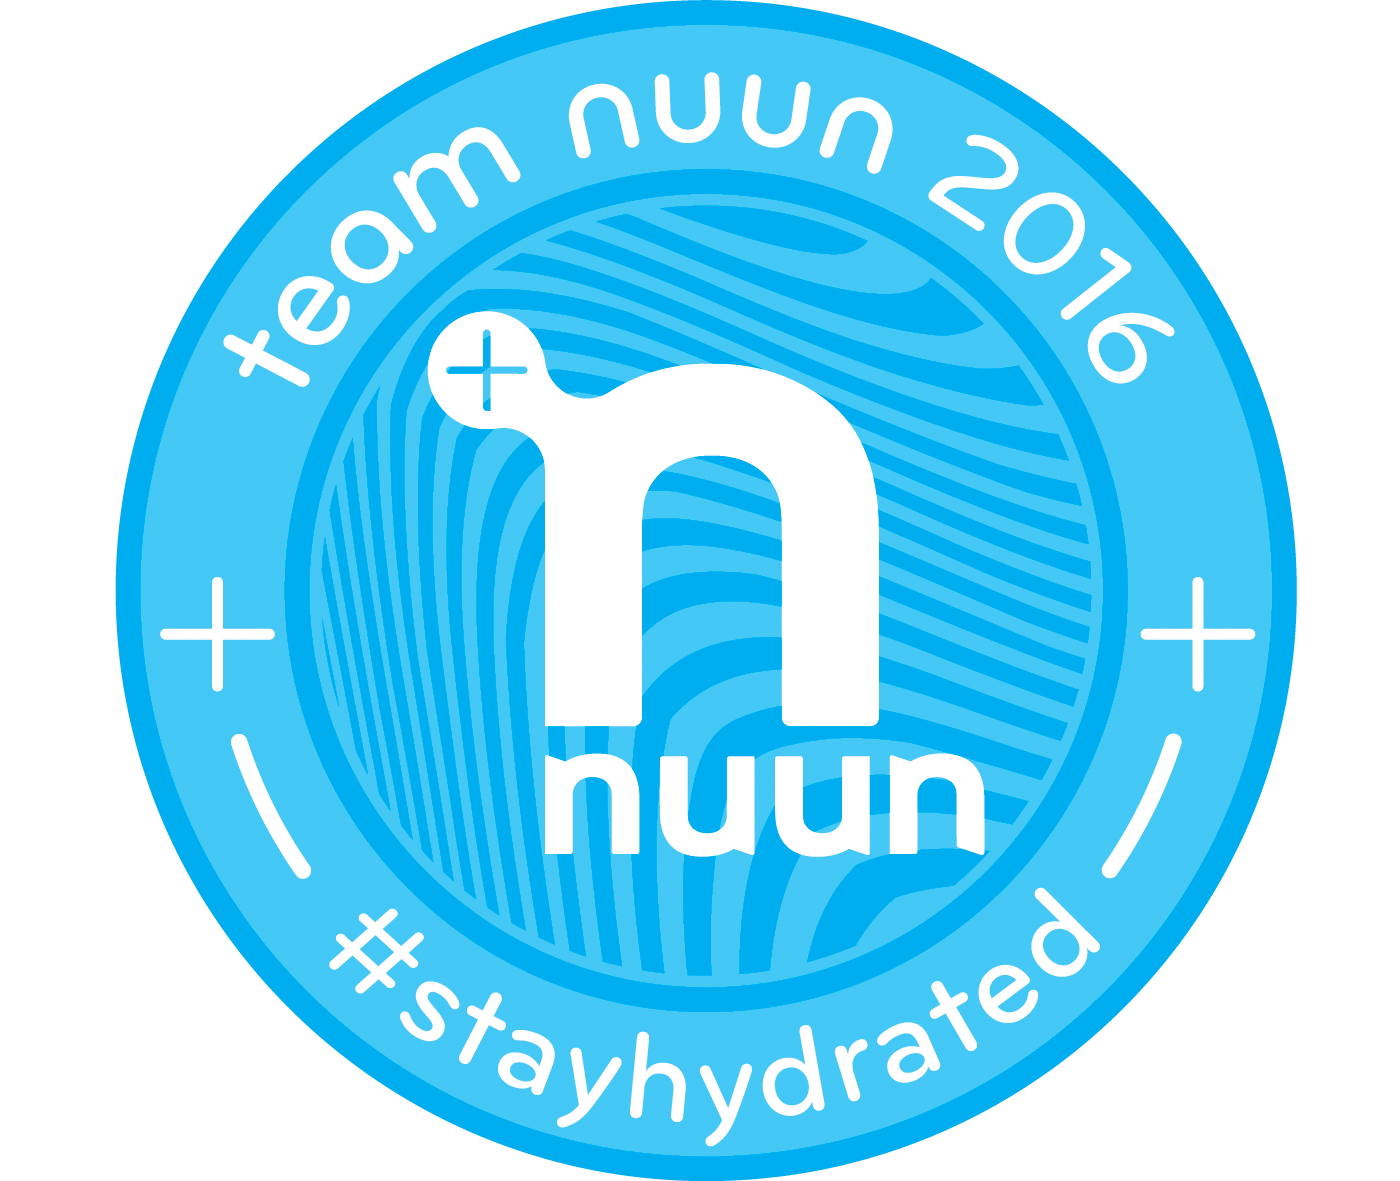 2016 Goals and Team Nuun